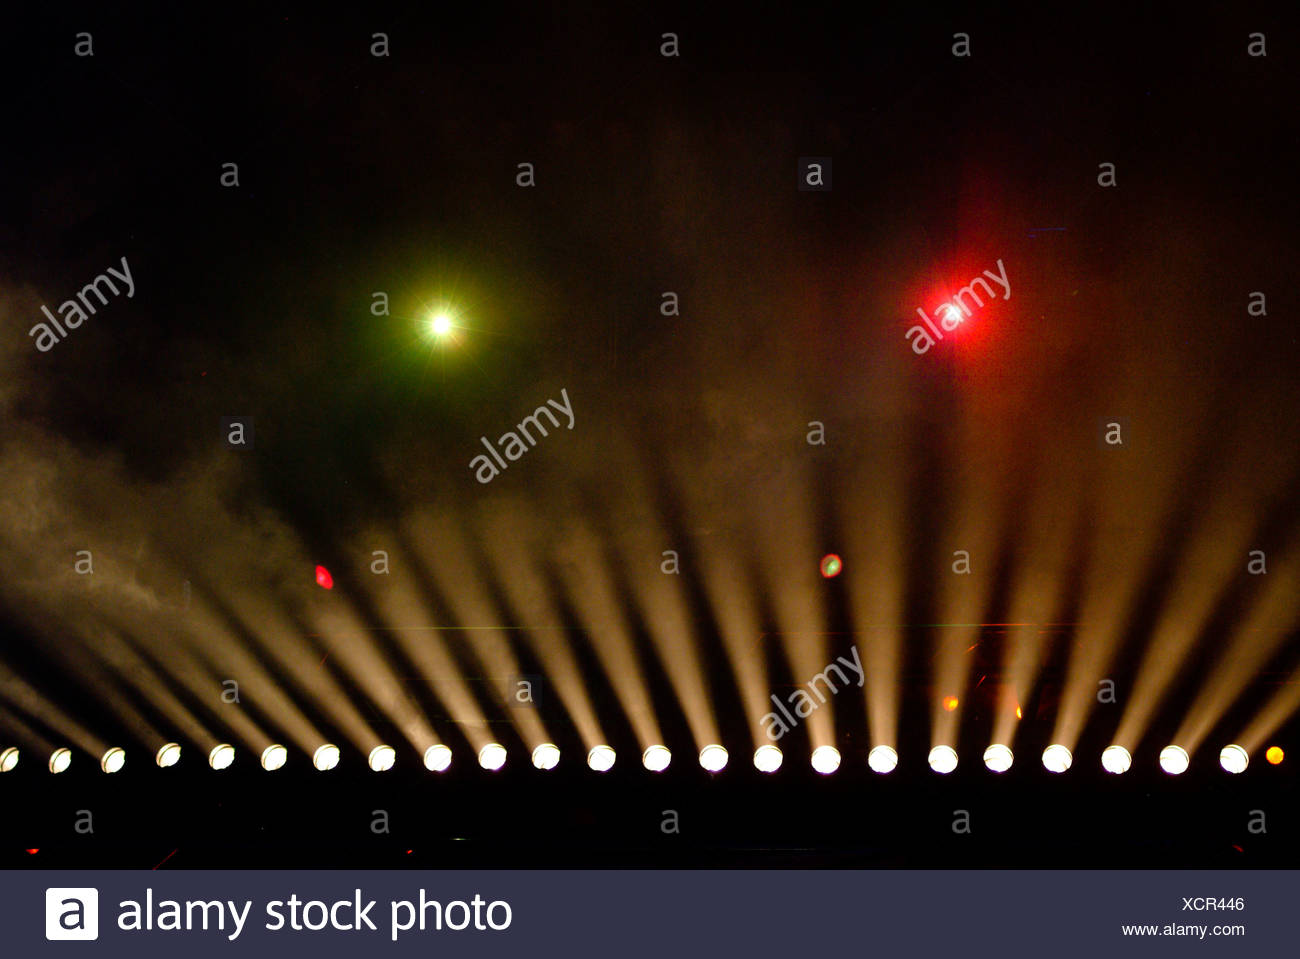 Stage lights at a theater - Stock Image